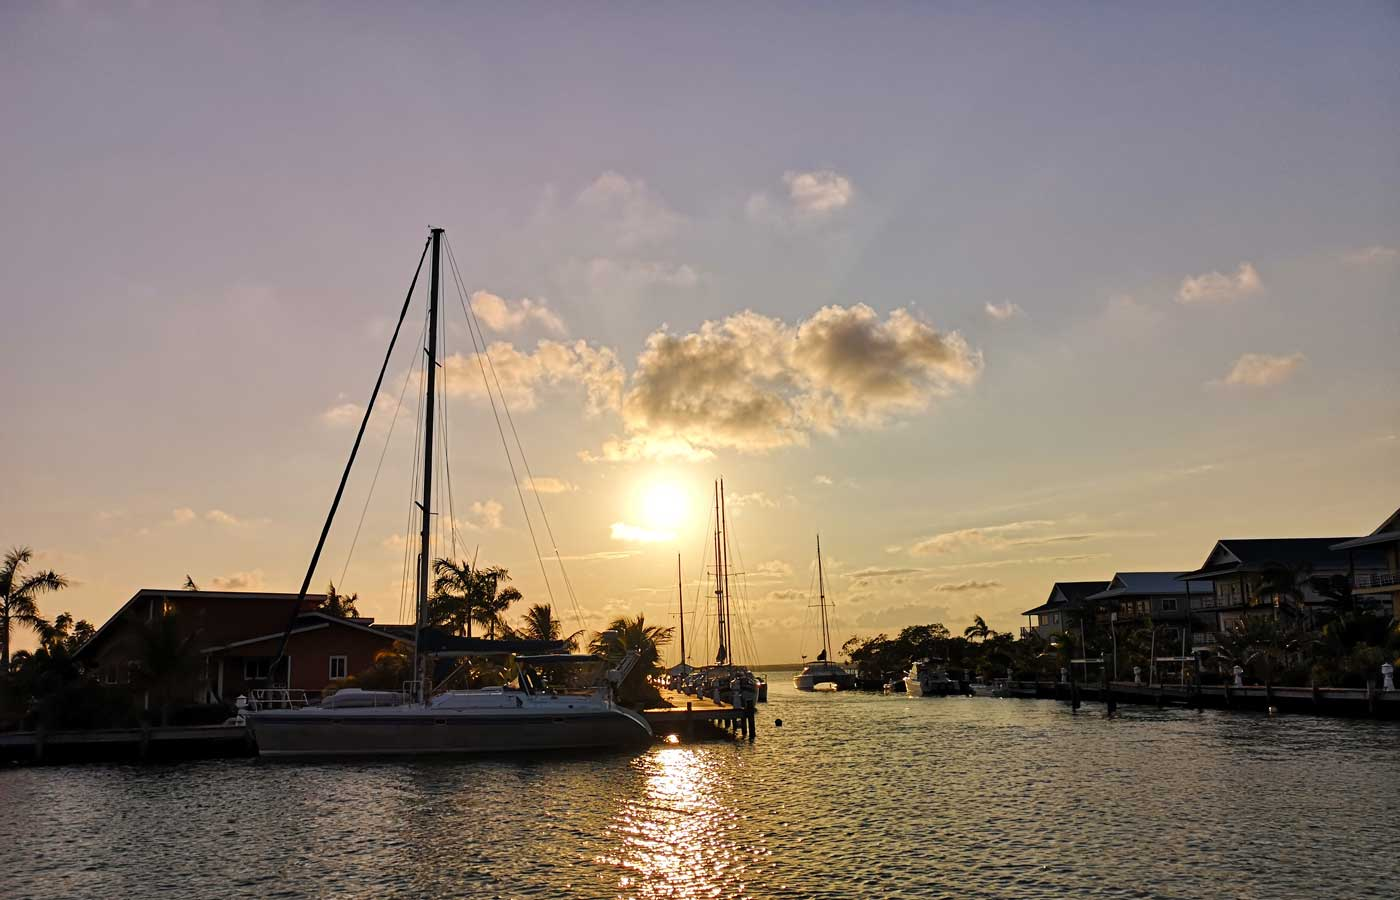 Sunset cruise in Placencia, Belize - Luxury holidays to Central America.